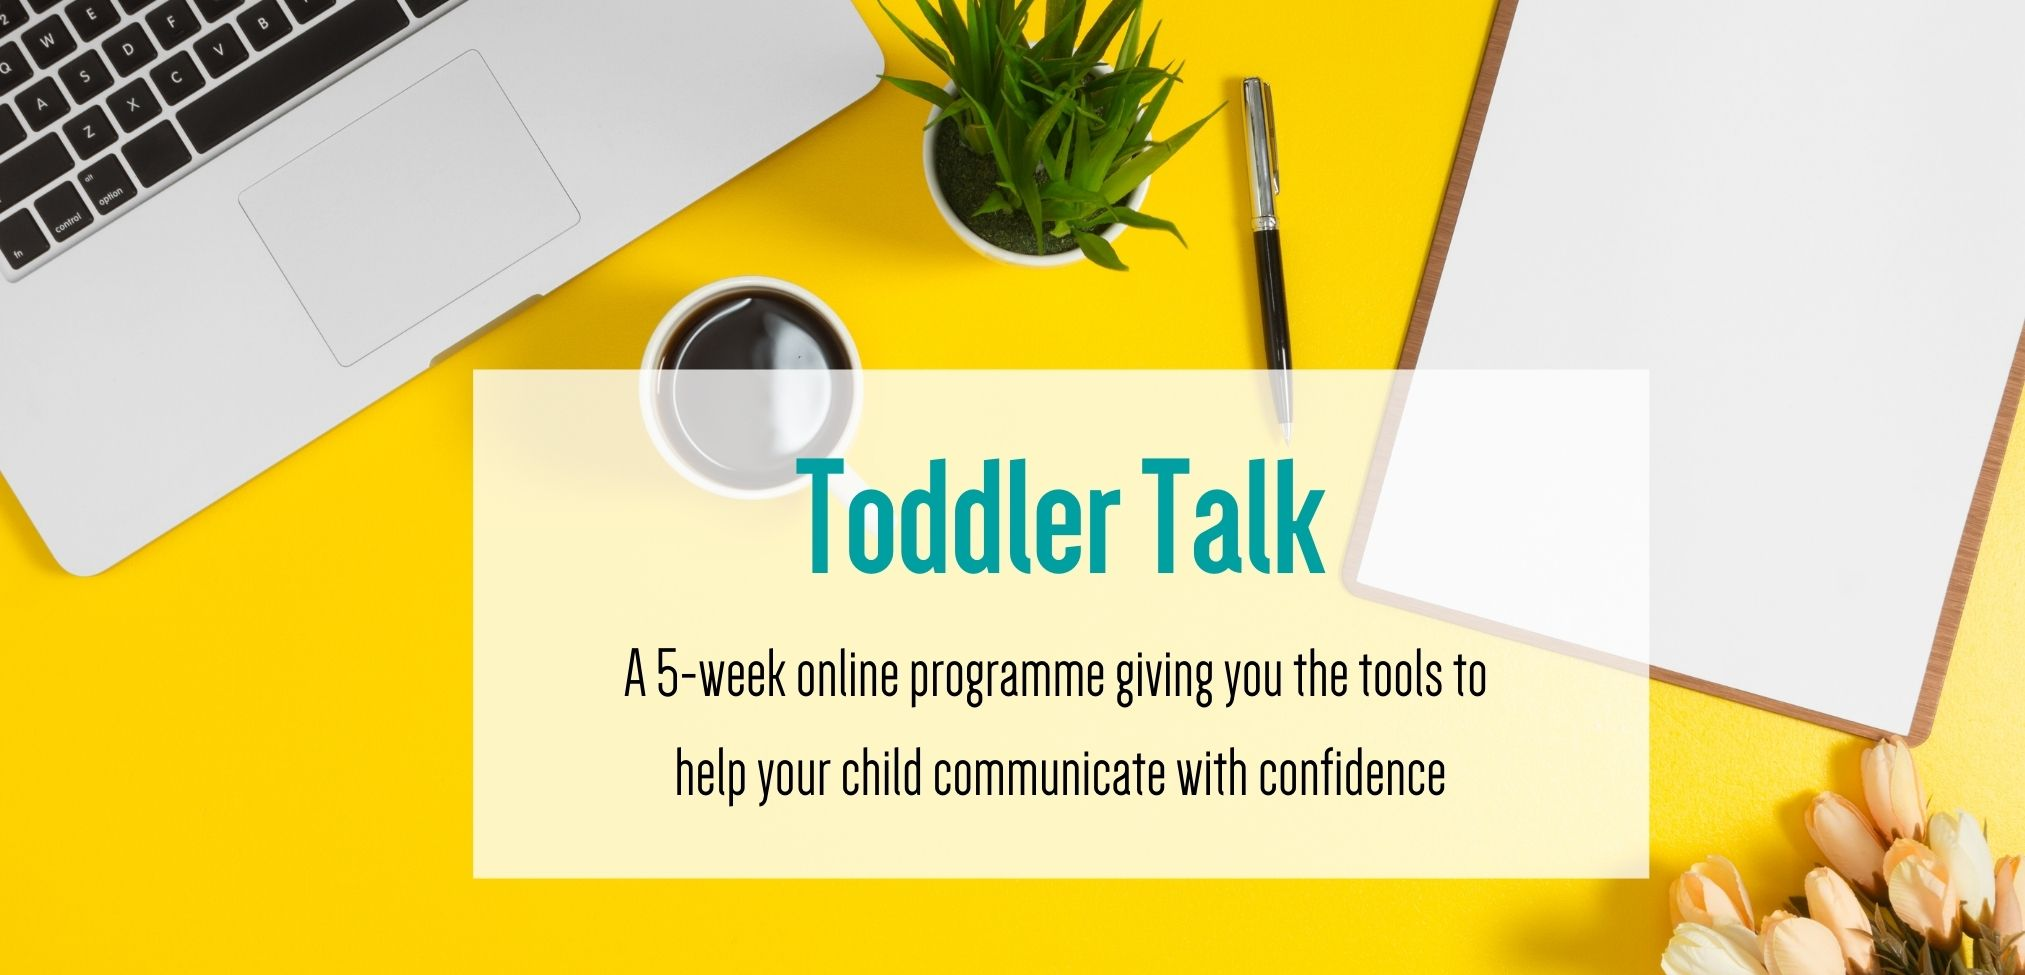 Toddler Talk - A 5 week online programme giving you the tools to help your child communicate with confidence